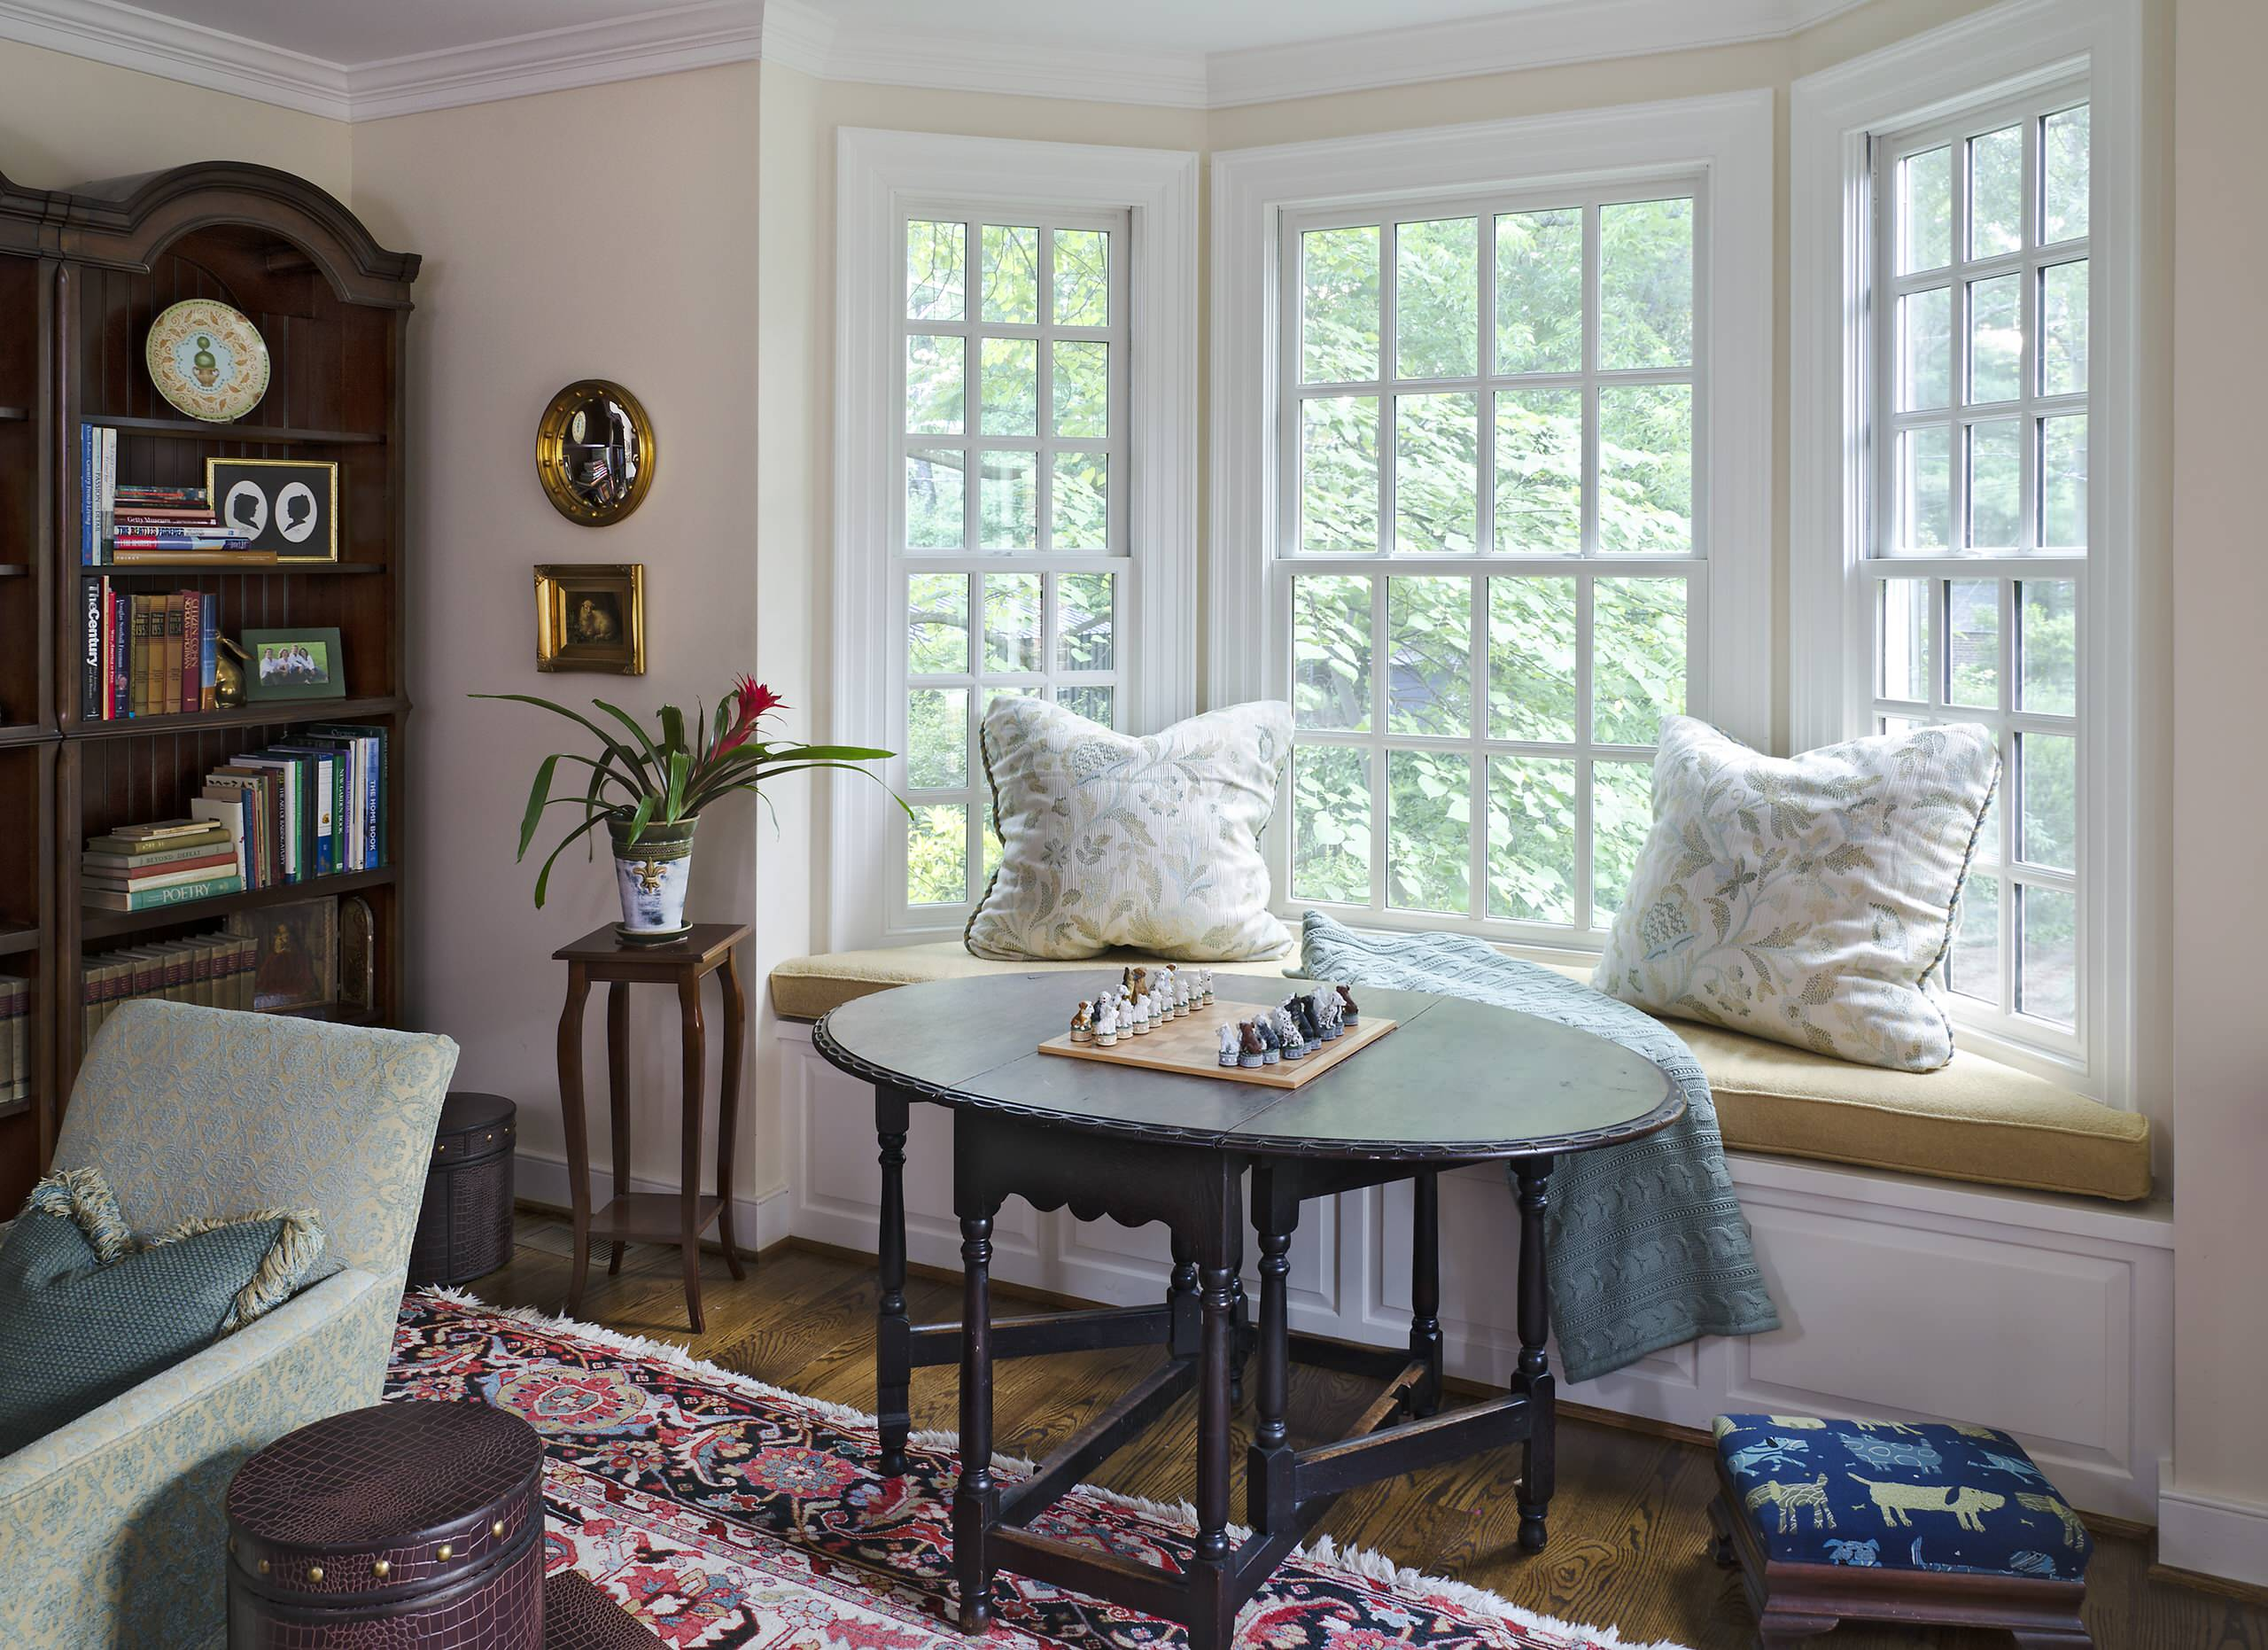 Exciting Bay Window Seat for Interior Home Design: Wood Flooring With Feizy Rug And Dark Oval Table For Traditional Family Room Design With Bay Window Seat And Decorative Cushions Plus Armchair Also Creative Bookshelves